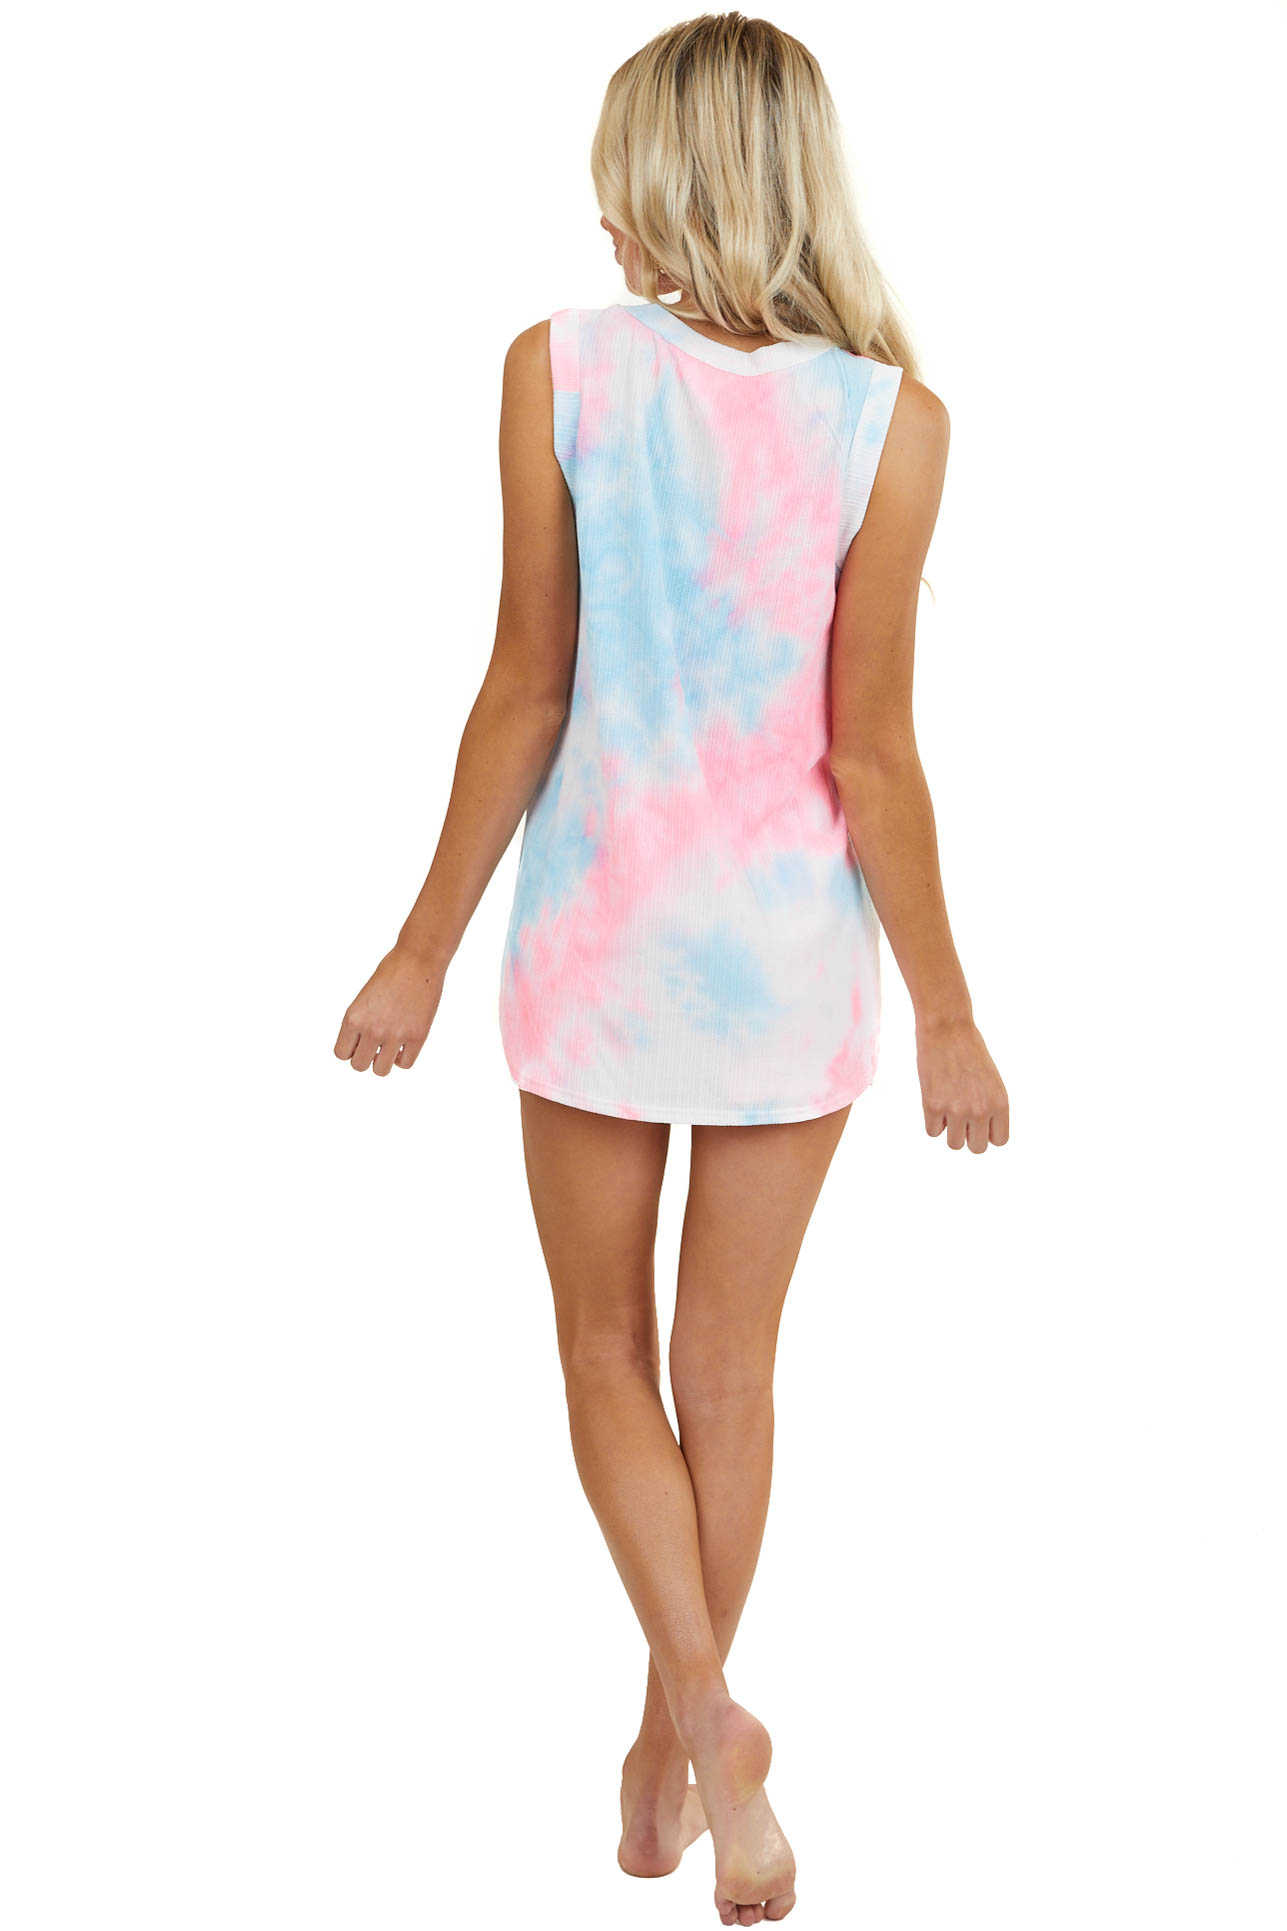 Bright Pink and Blue Tie Dye Tank and Shorts Two Piece Set